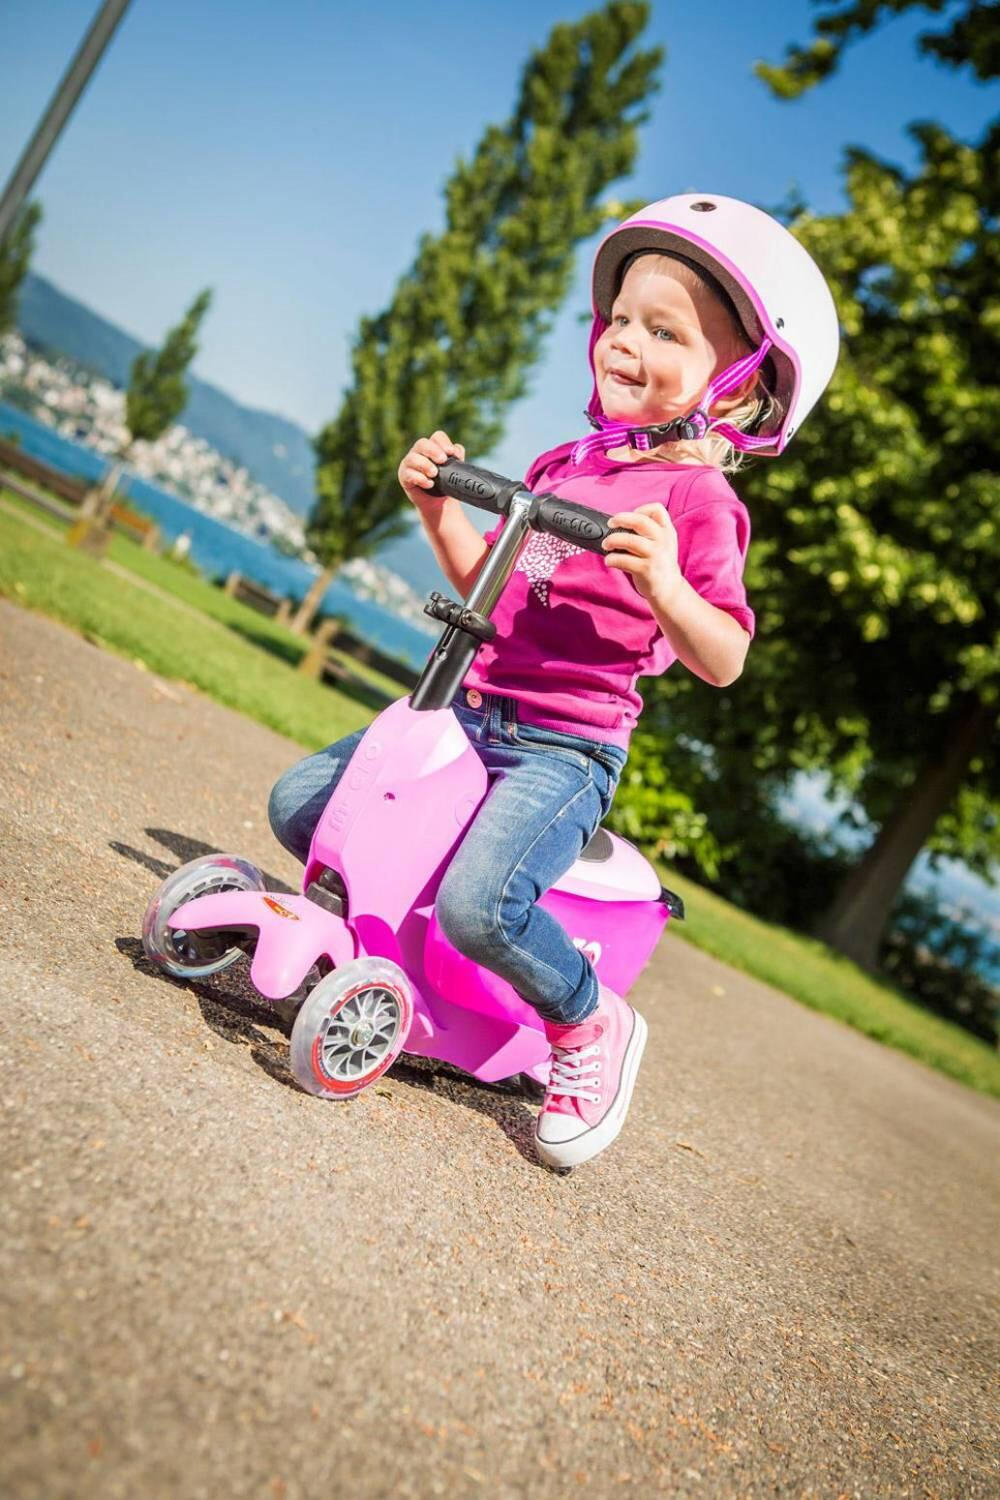 Roller - Micro Mini2go sporty Kinderkickboard (Farbe pink) - Onlineshop